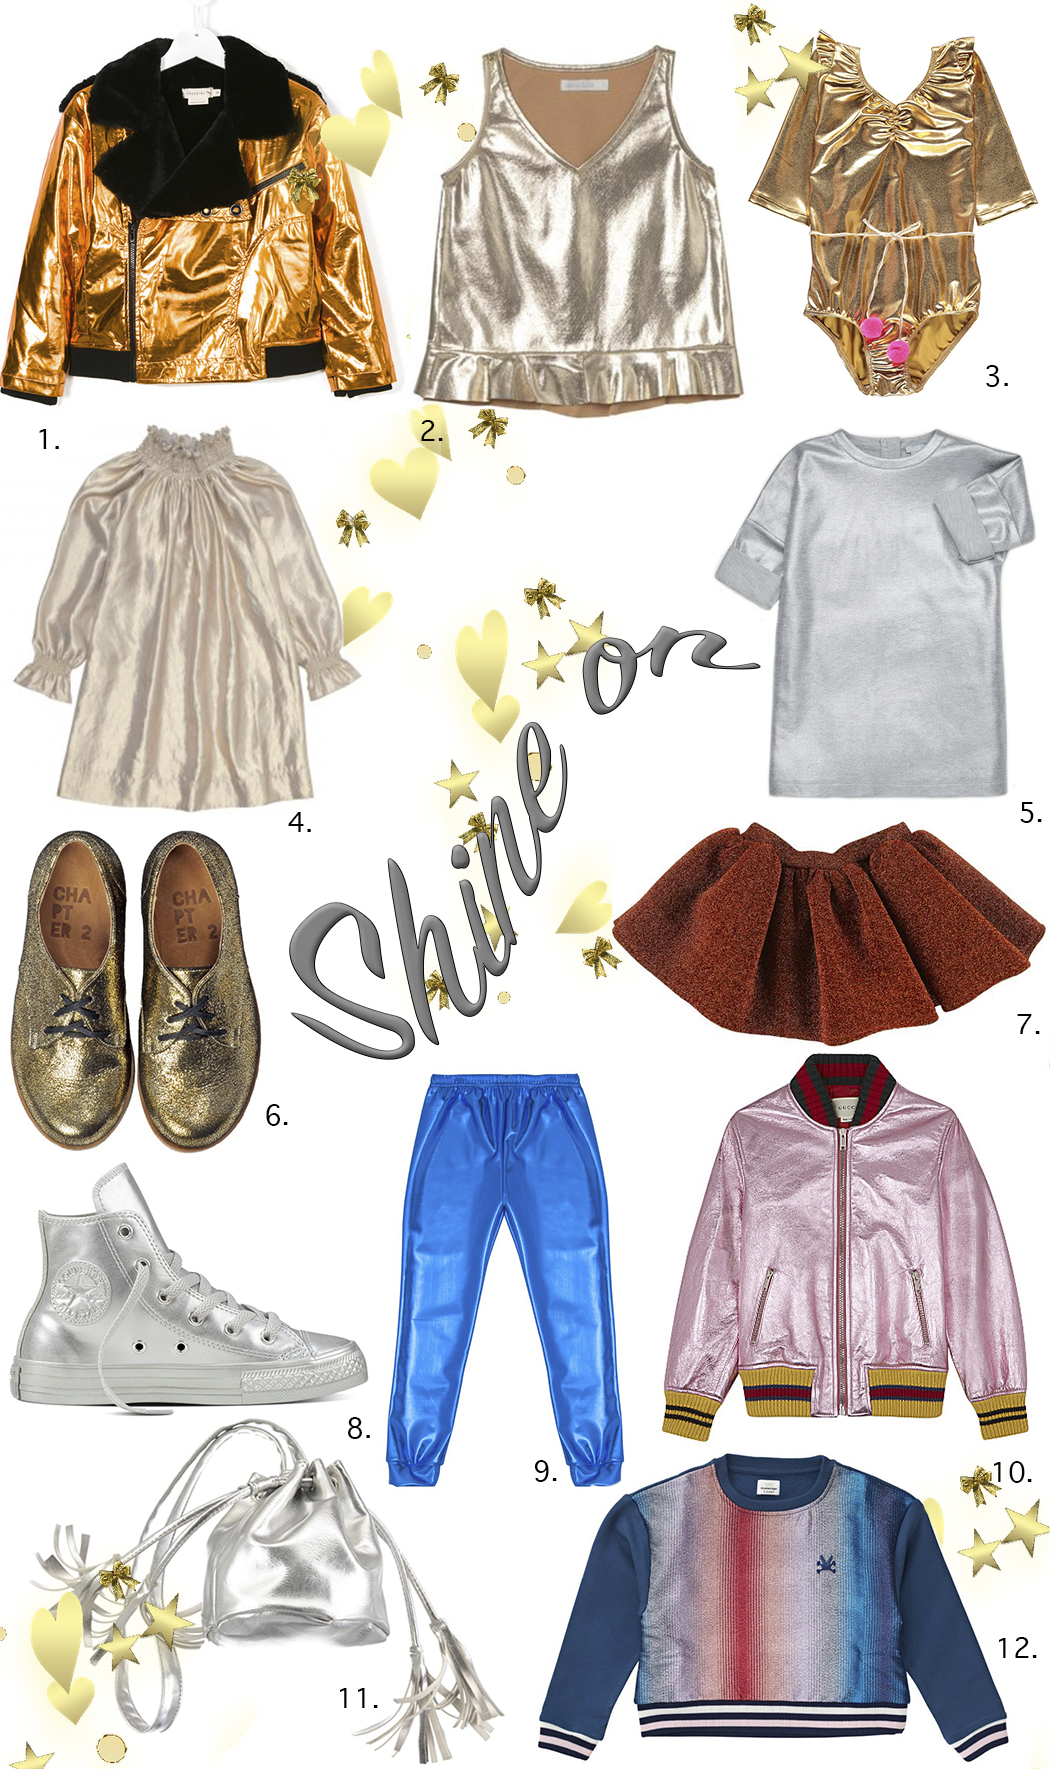 Shine On a Trends Edit featuring all things shiny and metallics by Yvadney Davis #trends #edit #metallic #yvadneydavis #oaksofacorn #juniorstyle